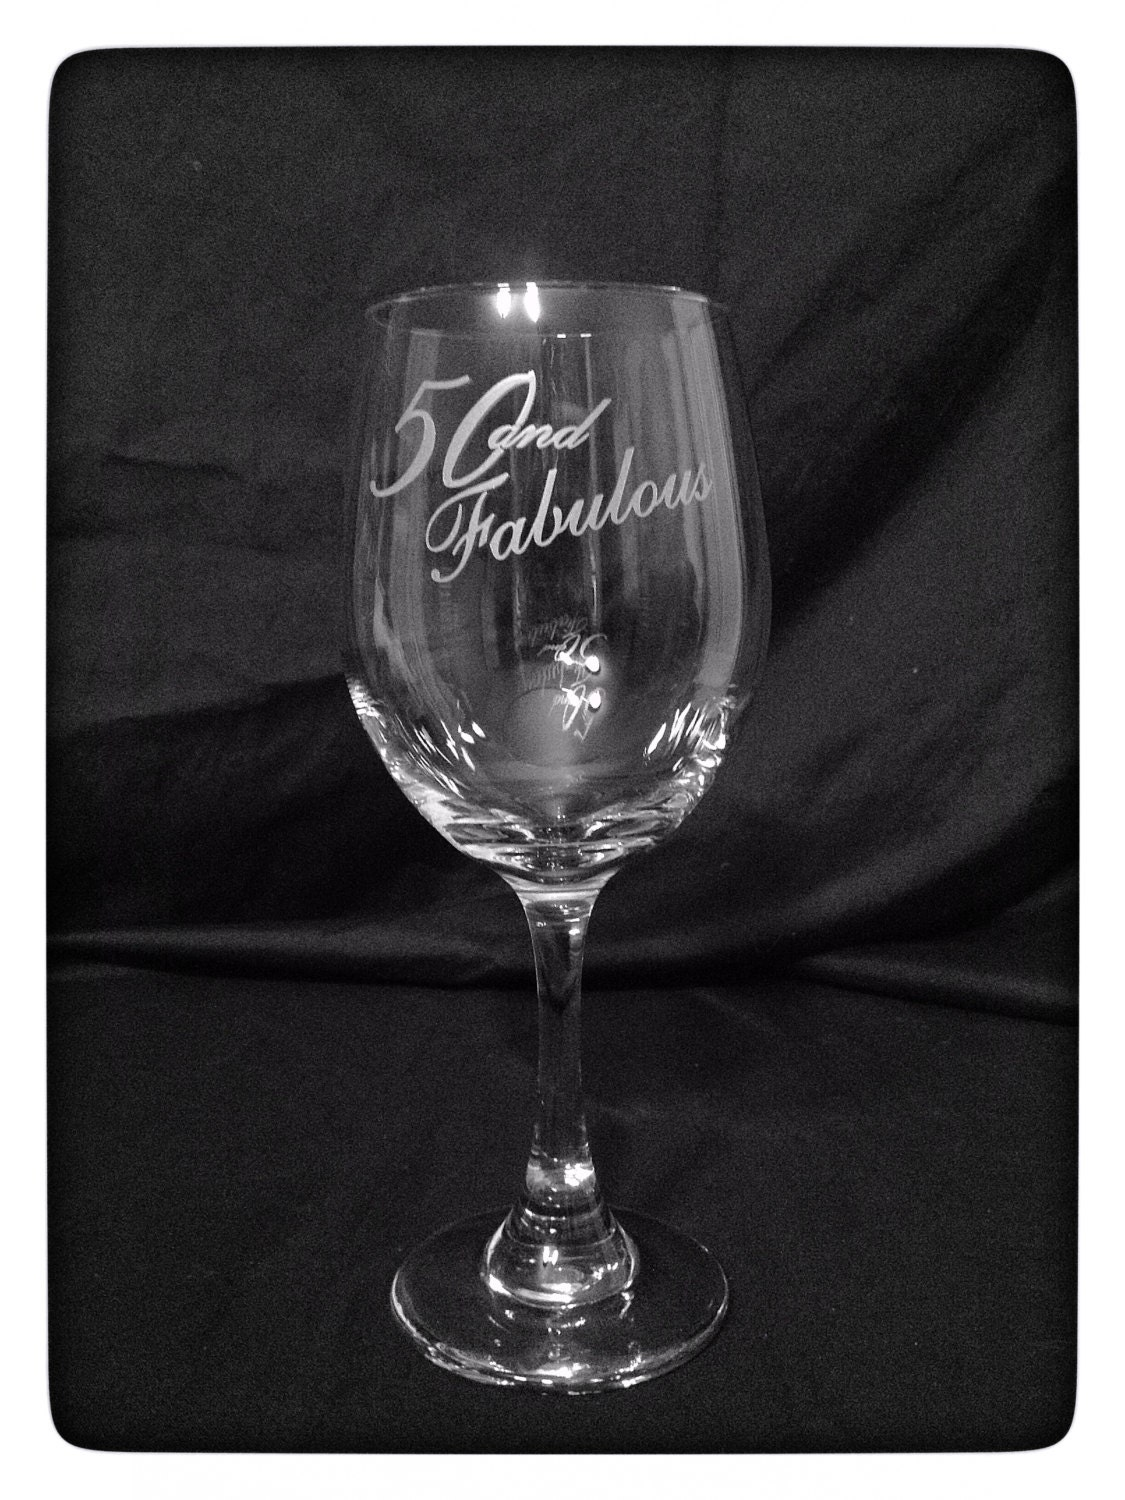 50 And Fabulous Good Day Bad Day Handcrafted Wine